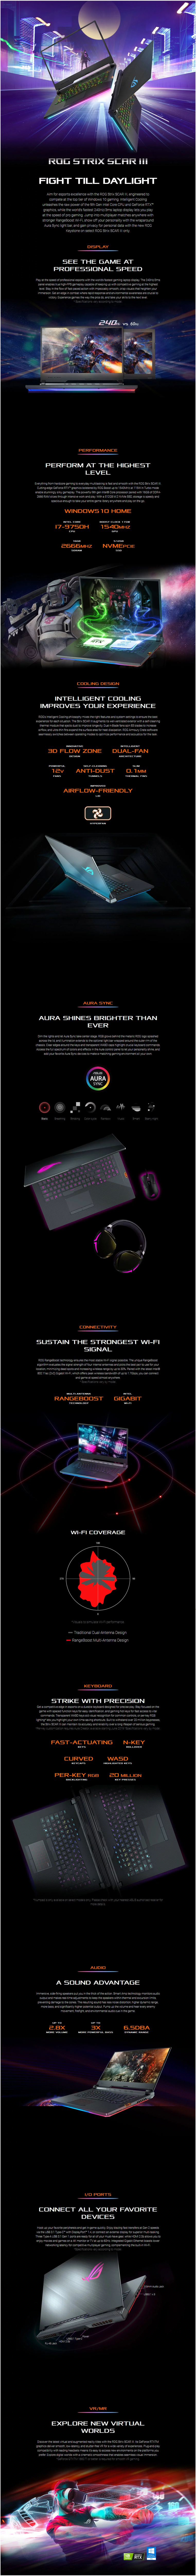 """A large marketing image providing additional information about the product ASUS ROG Strix Scar III GL531GV 15.6"""" i7 RTX2060 Windows 10 Gaming Notebook - Additional alt info not provided"""